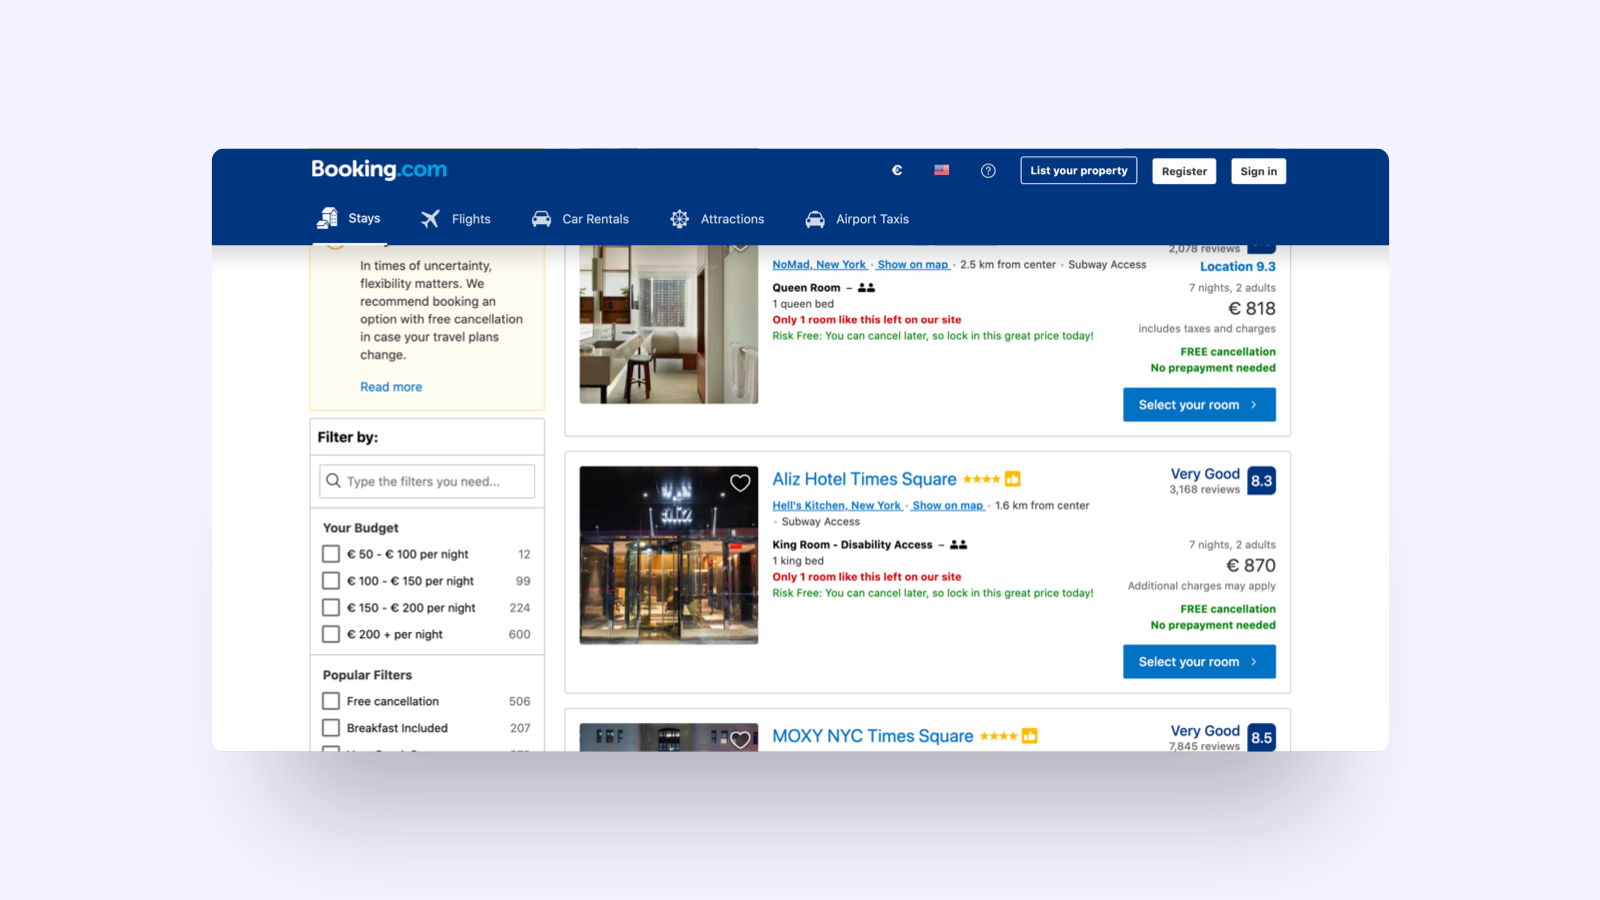 Here we see an example from Booking.com prominently telling the user that there is just one room left at these hotels.